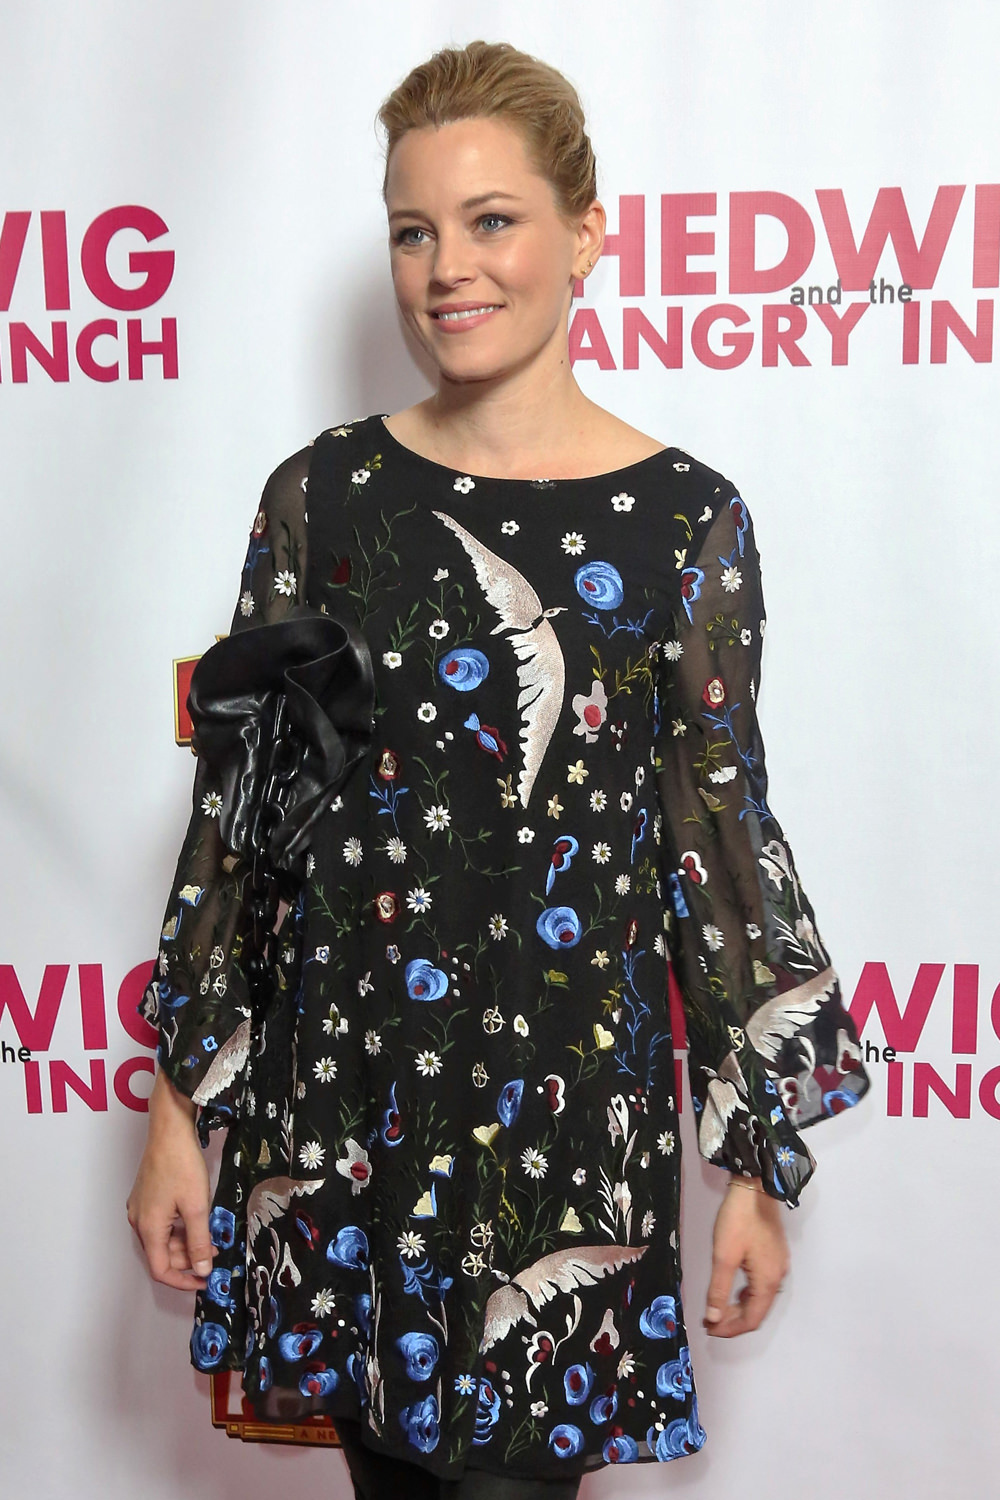 elizabeth-banks-hedwig-angry-inch-opening-night-red-carpet-fashion-tom-lorenzo-site-1